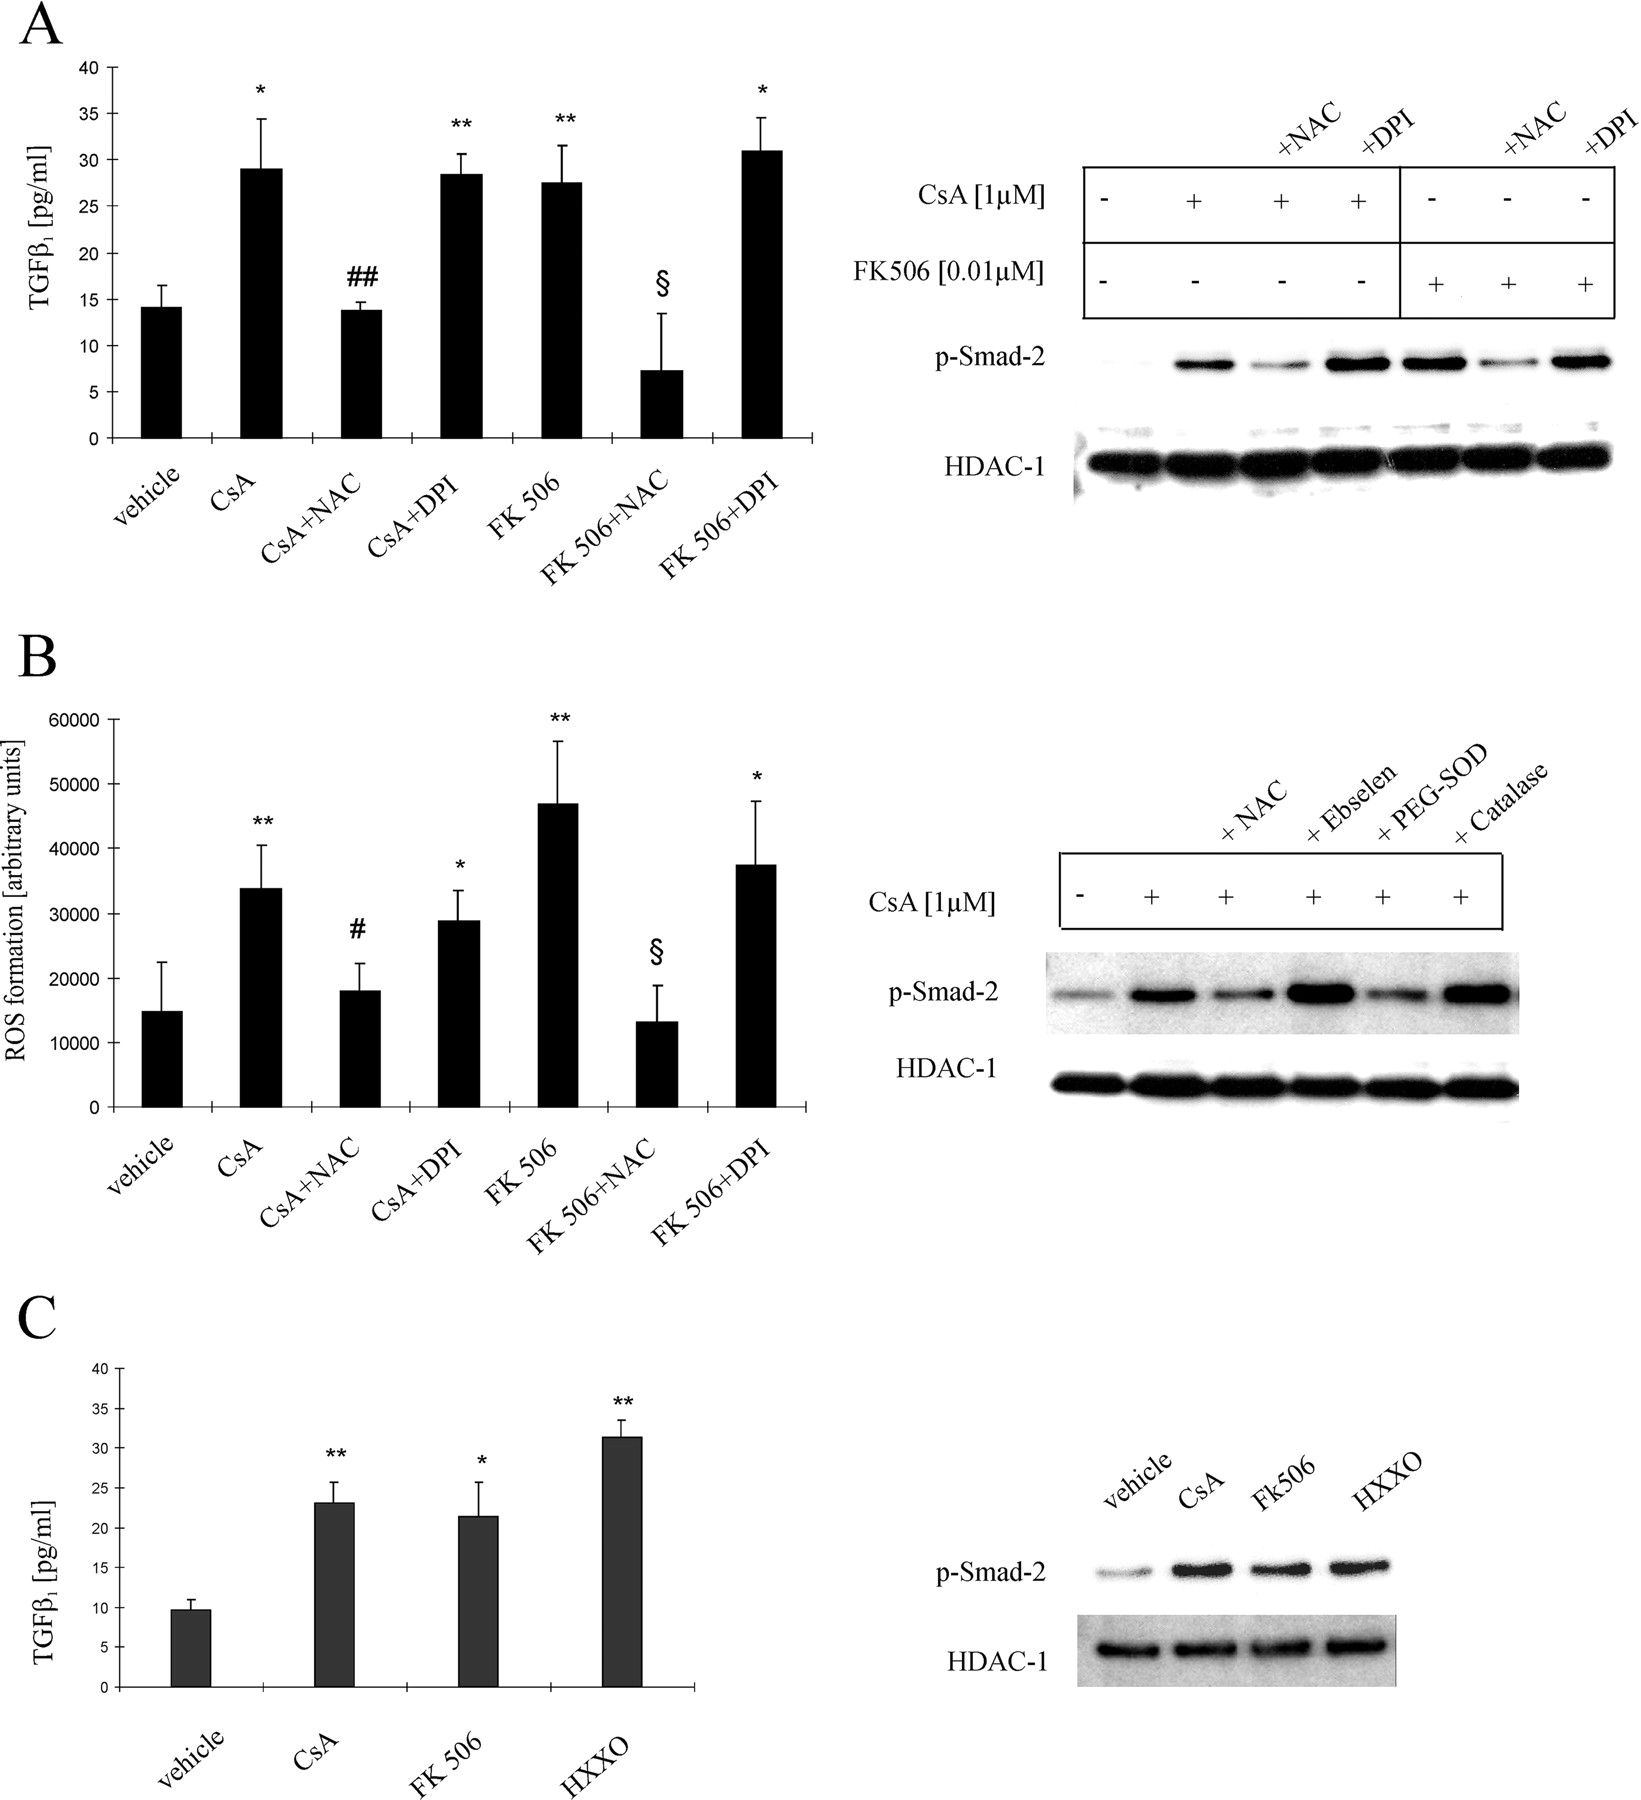 Molecular Mechanisms Of Tgf Receptor Triggered Signaling Cascades Rapidly Induced By The